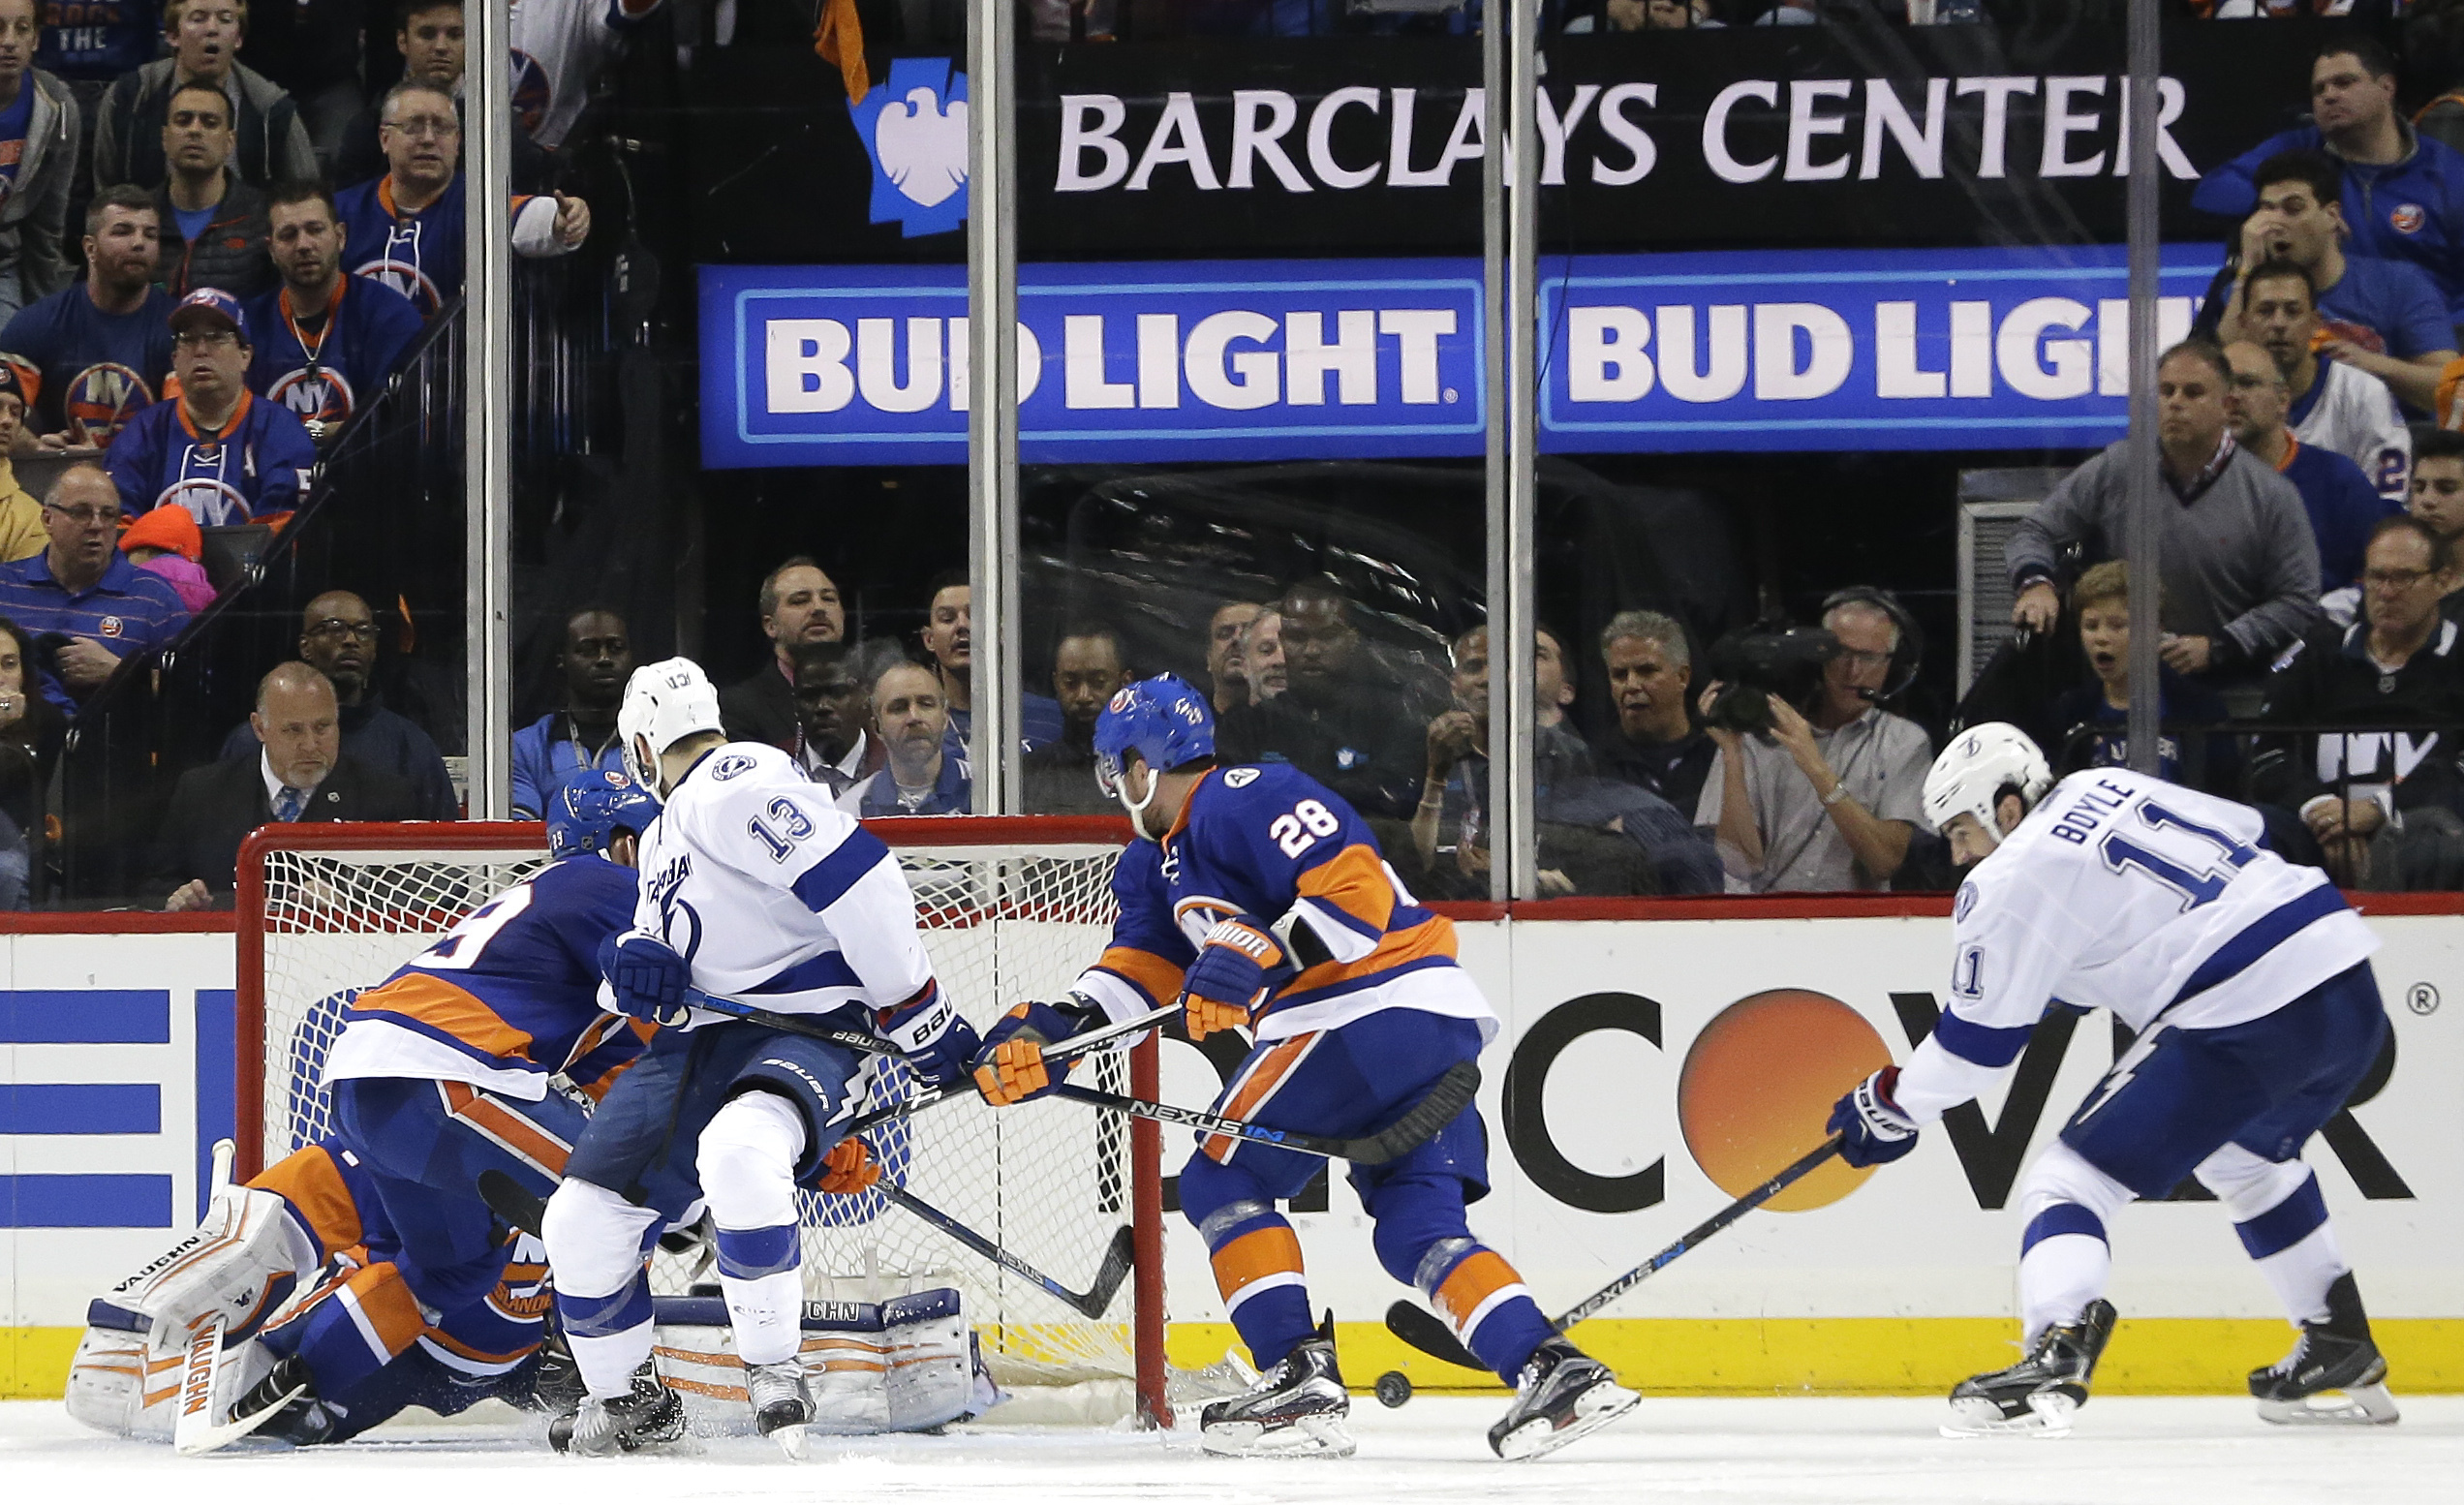 Tampa Bay Lightning center Brian Boyle (11) takes the puck off the boards and shoots to score a goal against the New York Islanders during the overtime period of Game 3 of the NHL hockey Stanley Cup Eastern Conference semifinals, Tuesday, May 3, 2016, in